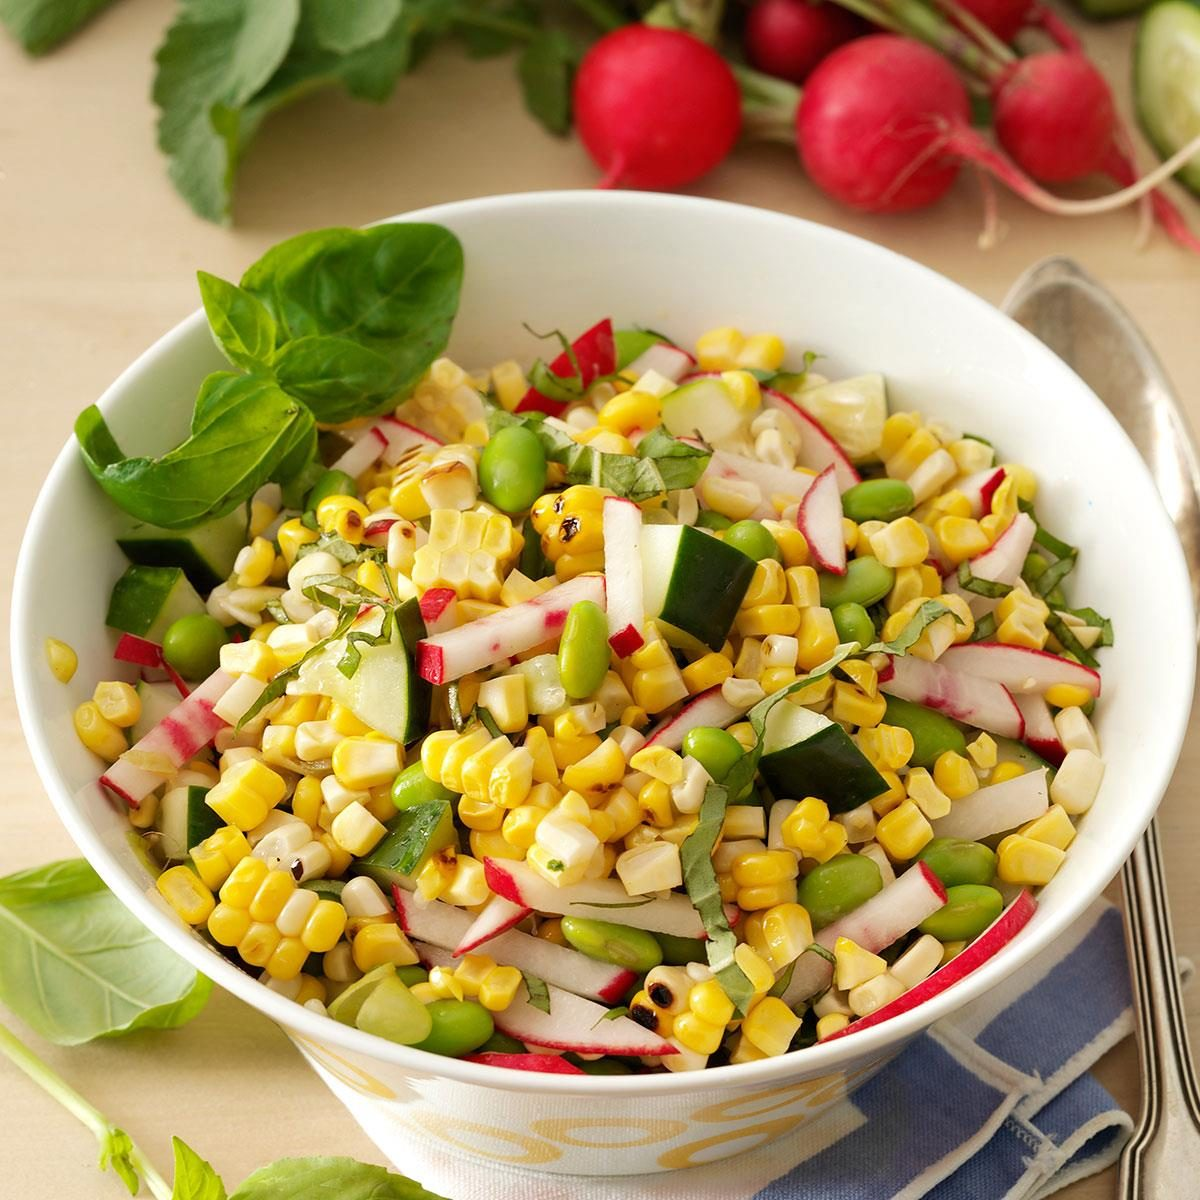 Sweet Corn: Farmers Market Corn Salad